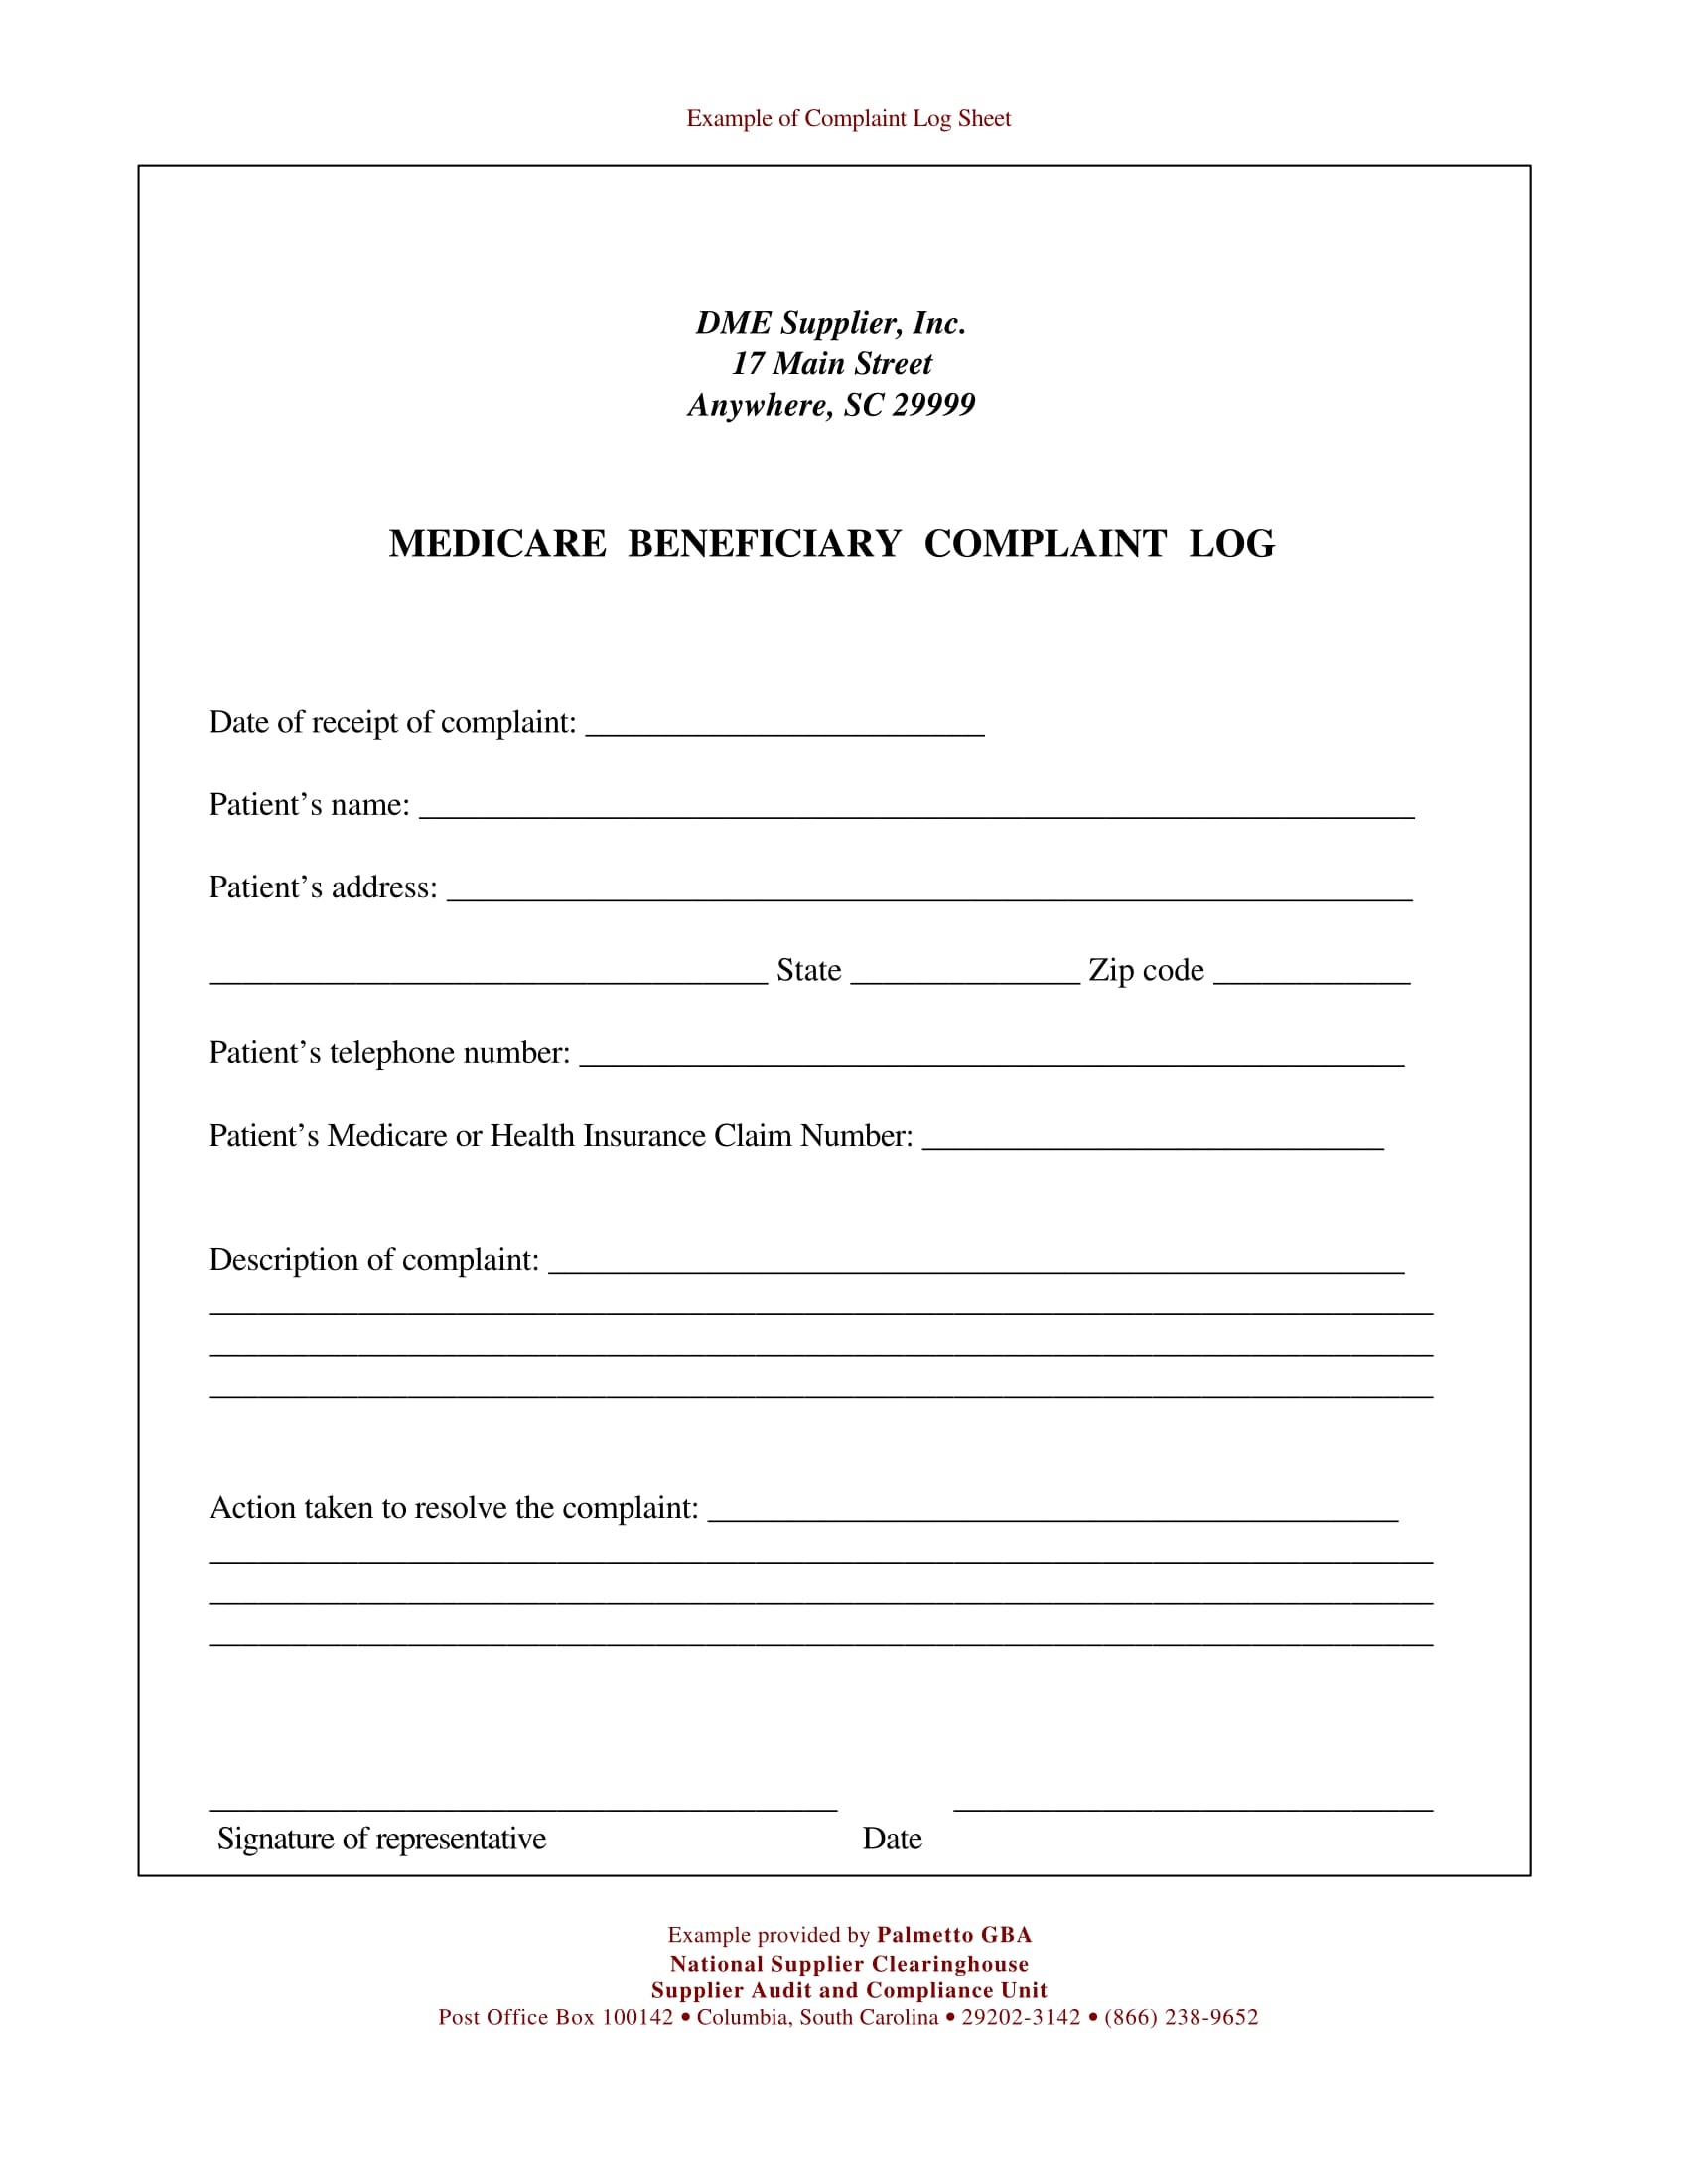 medicare beneficiary complaint log form 1